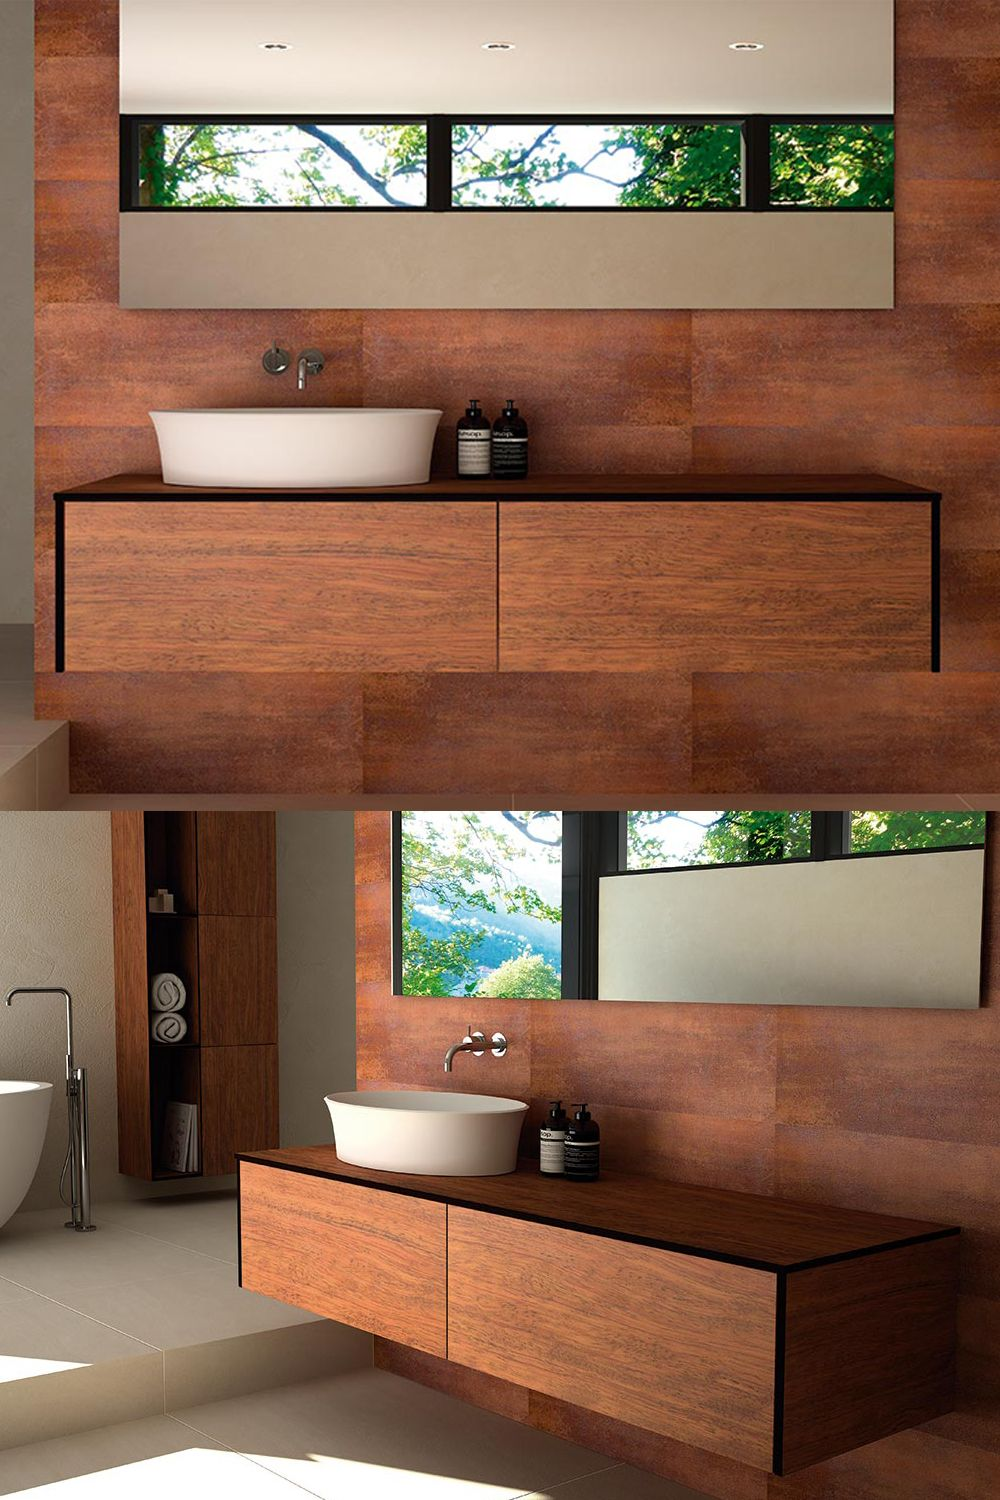 Size Length 100cm To 180cm Width 45cm Height 30cm Incl Brackets Cabinet With The Elegance Of Natural Wood Designed With Respect For Nature And Healt Banyo